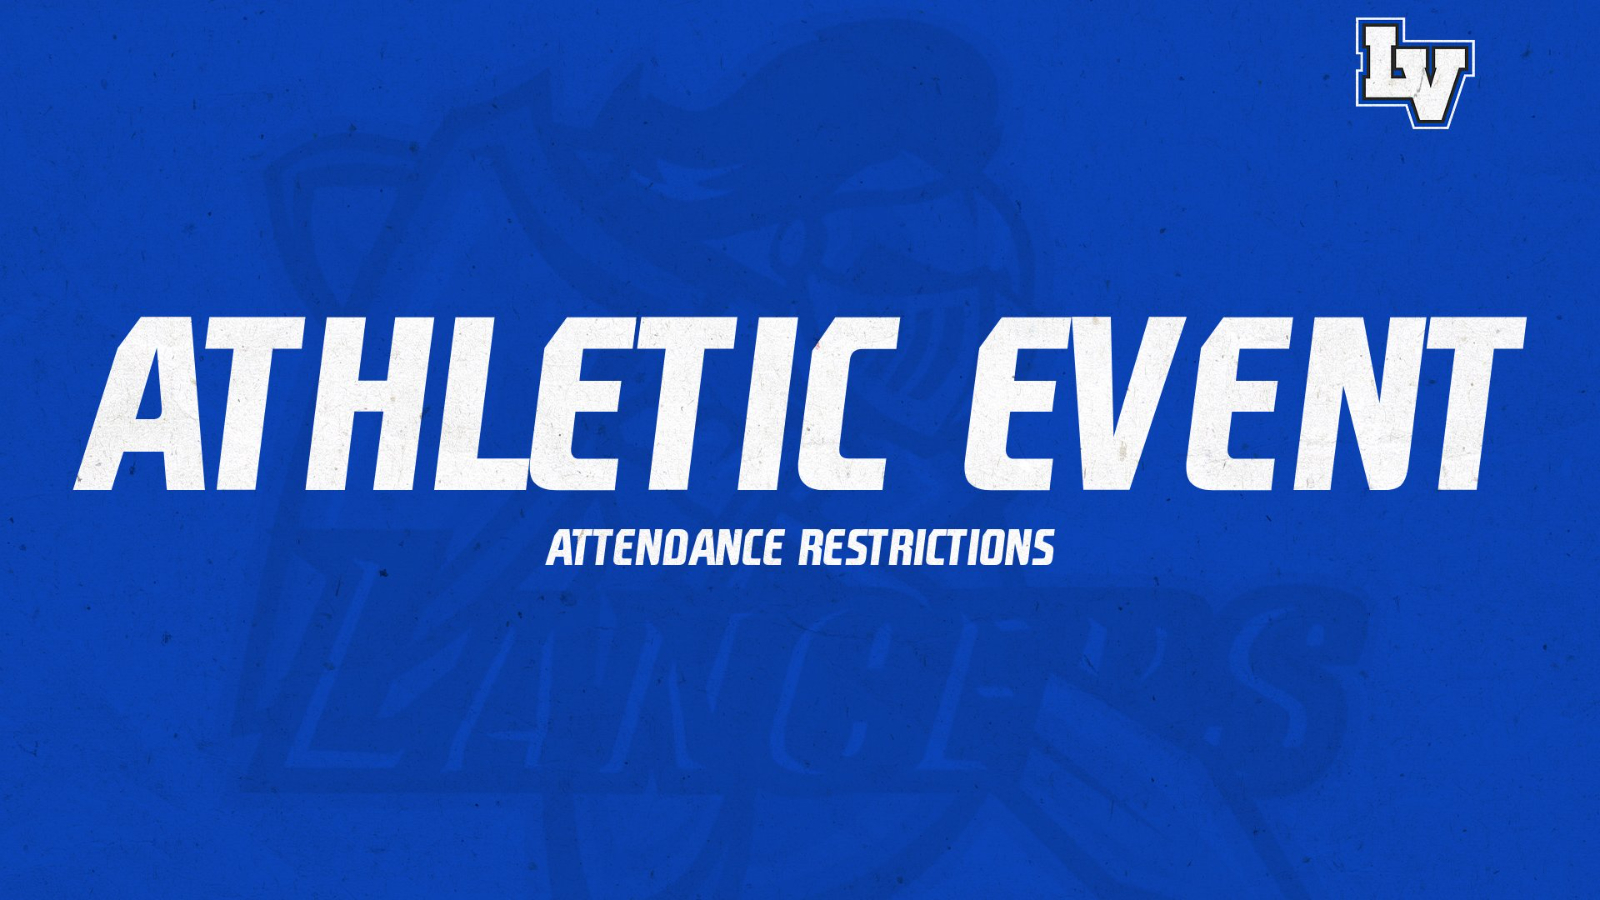 Athletic Event Attendance Restrictions